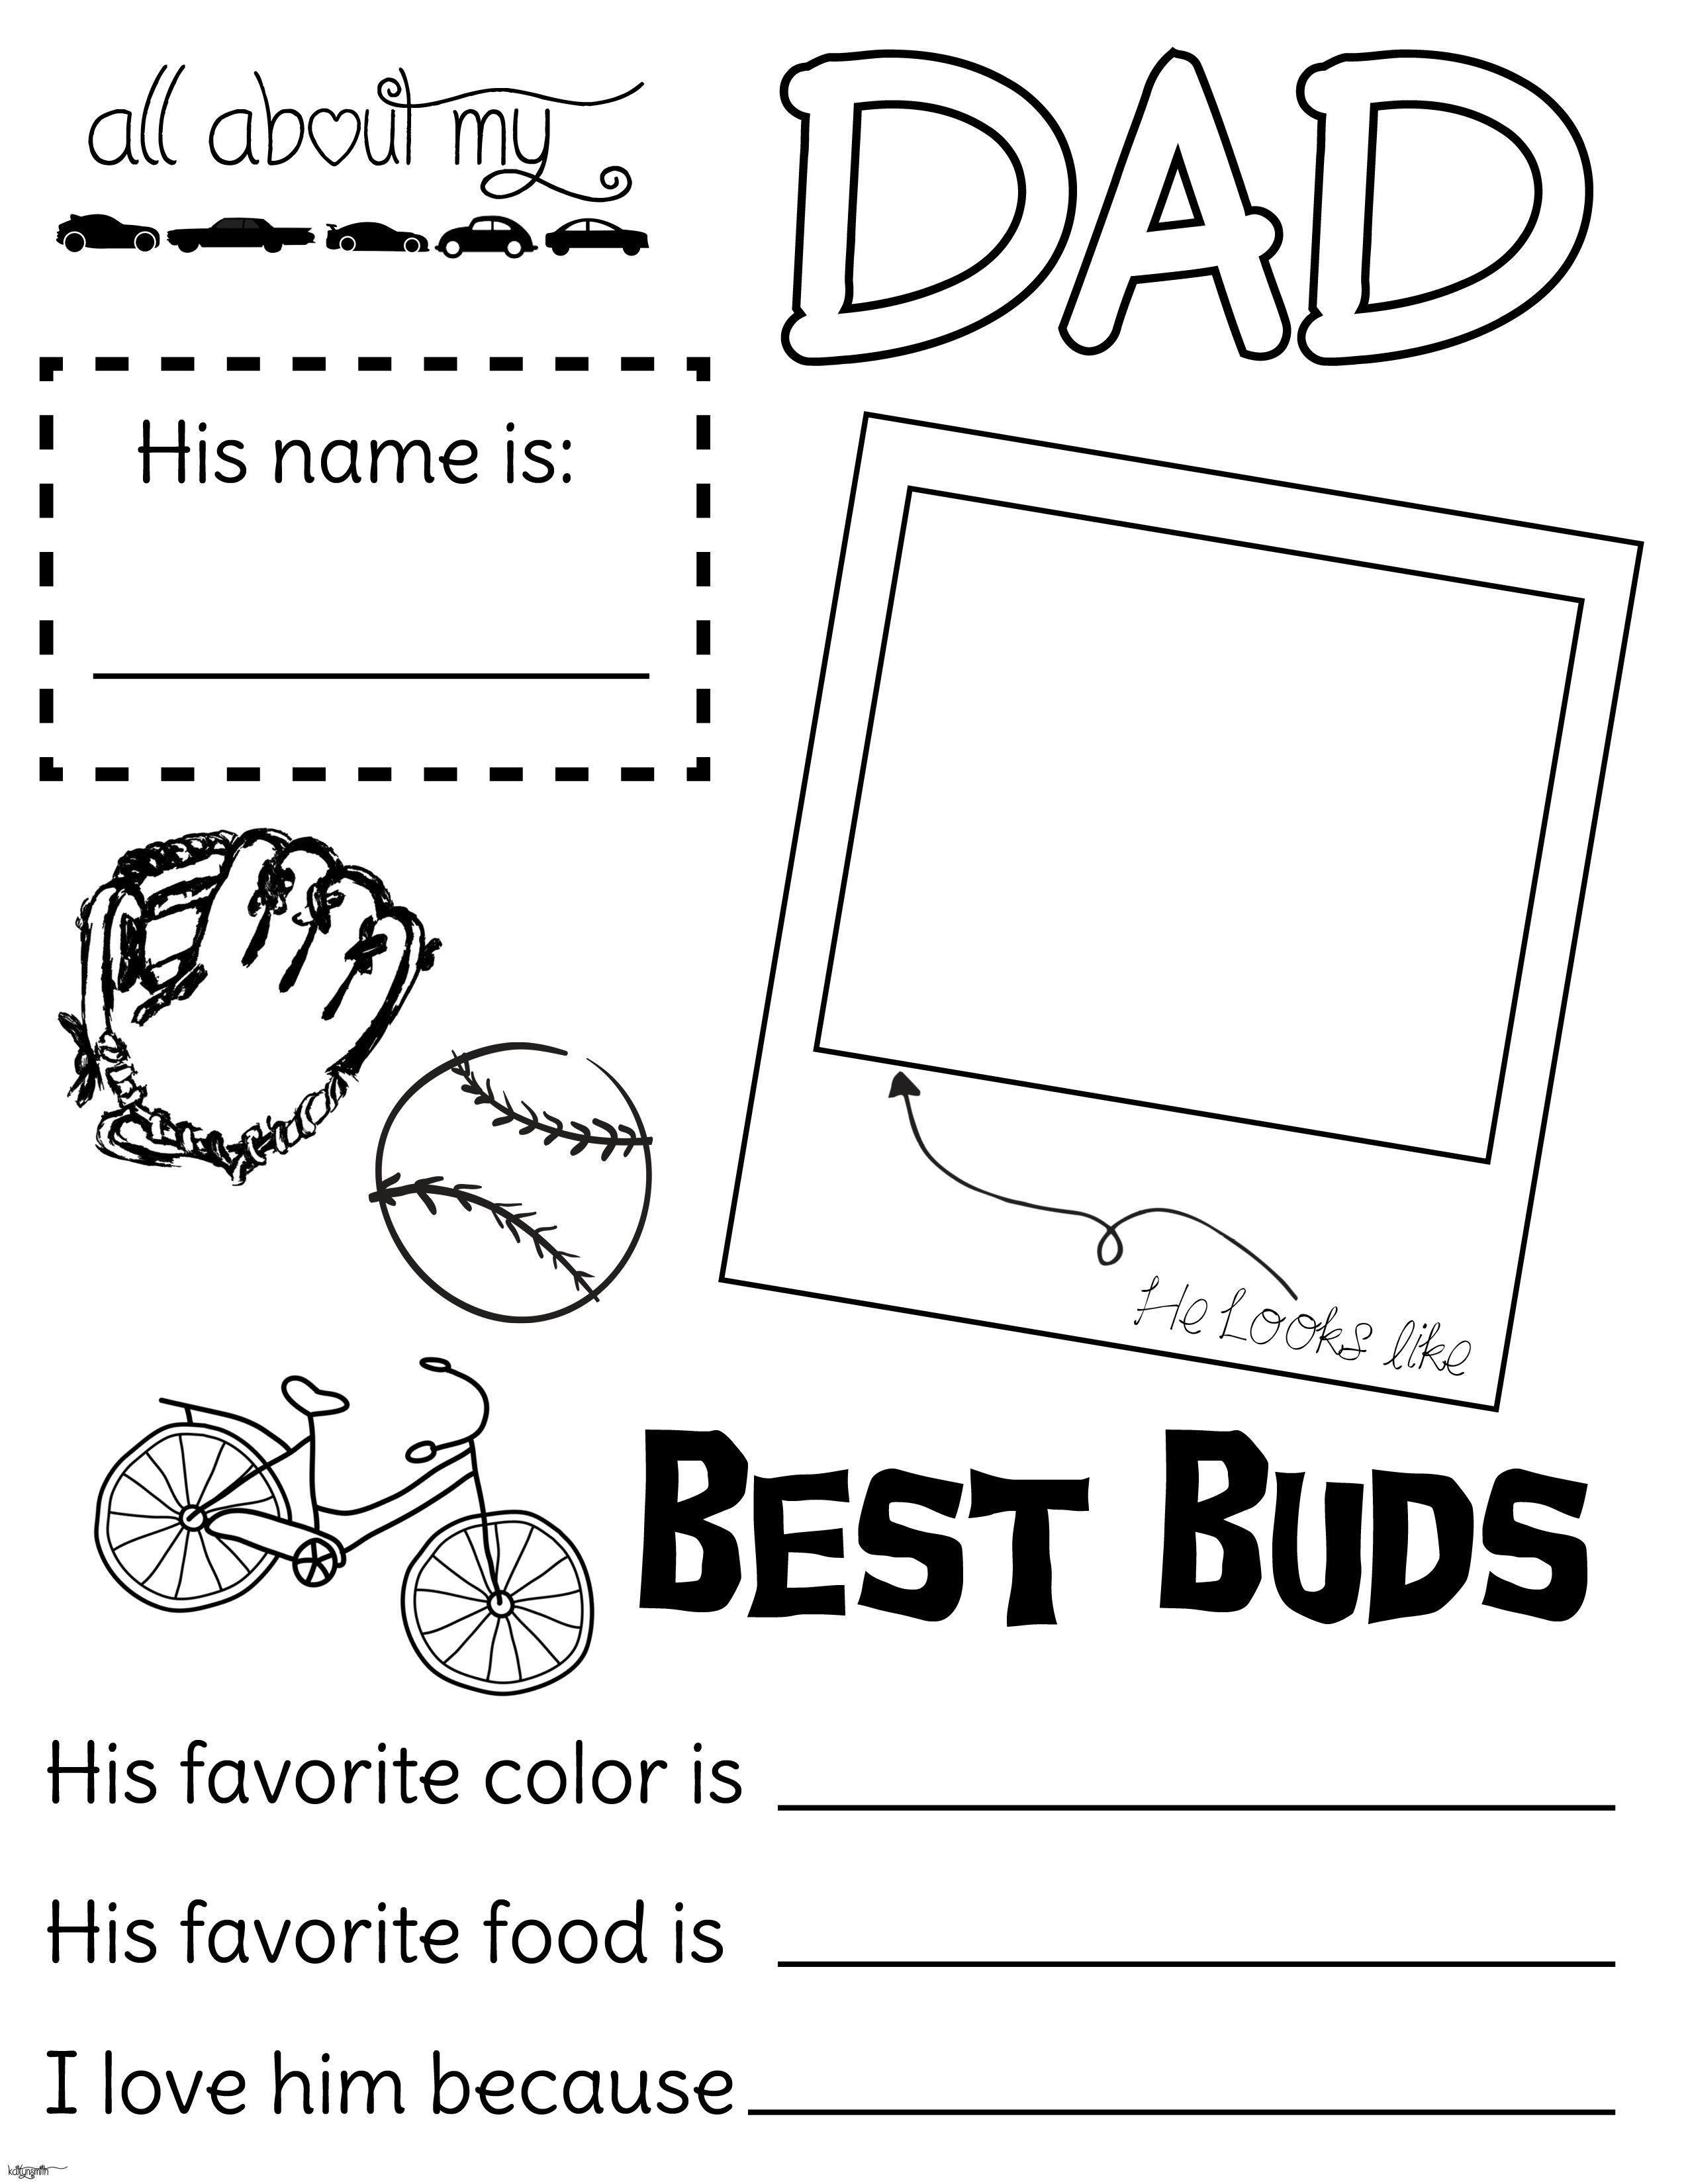 All about my dad. Fathers Day handout. fillout, coloring.